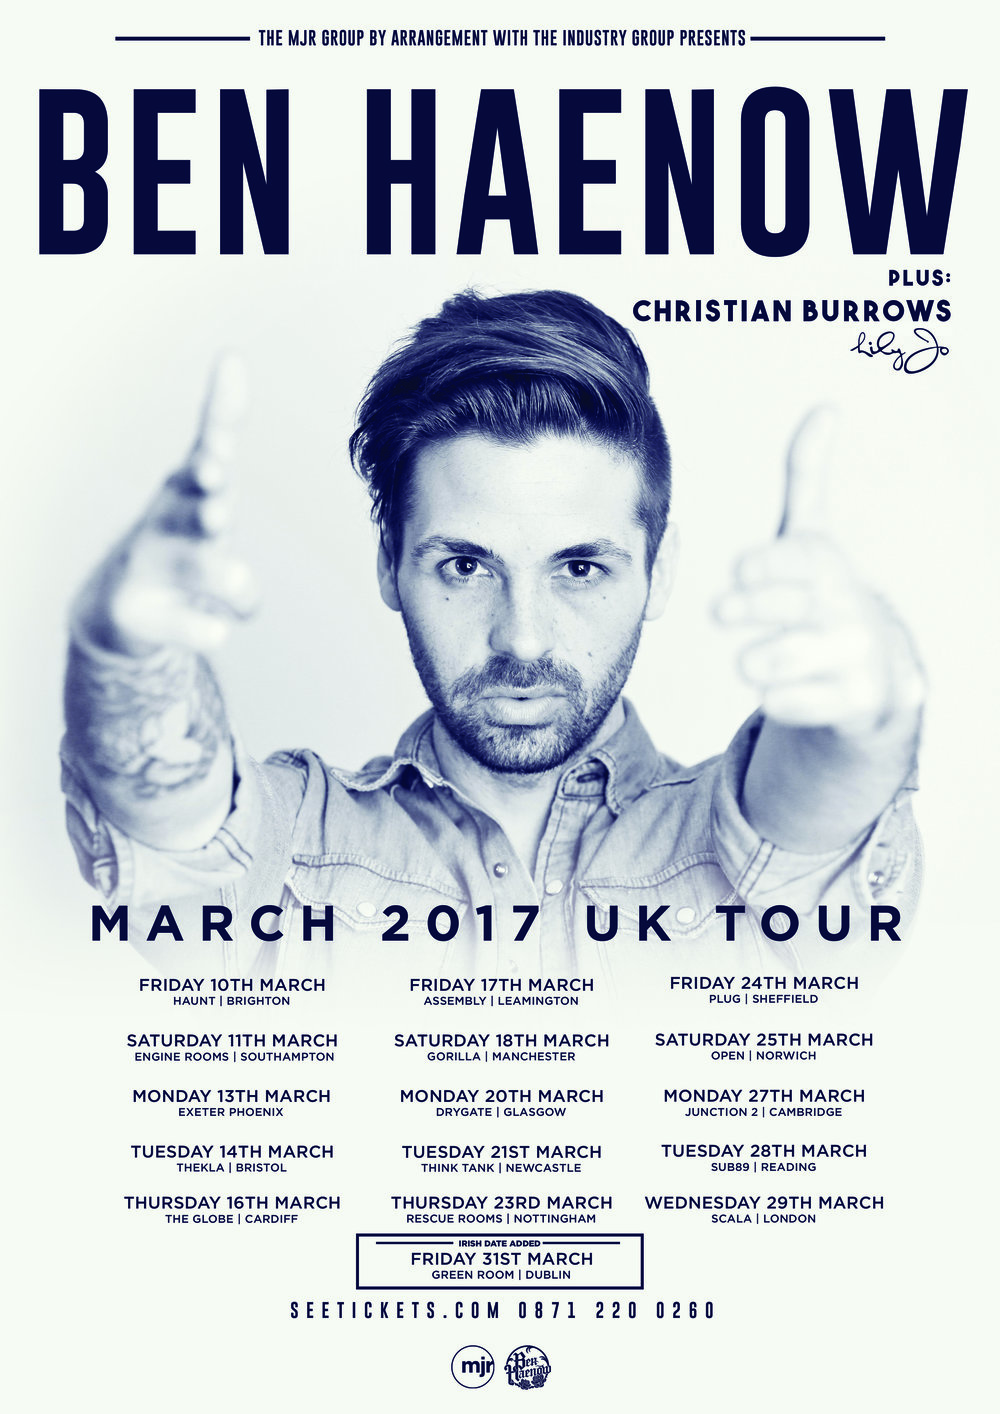 Catch me on my first UK tour supporting Ben Haenow. For tickets click here:    https://www.ents24.com/uk/tour-dates/lily-jo